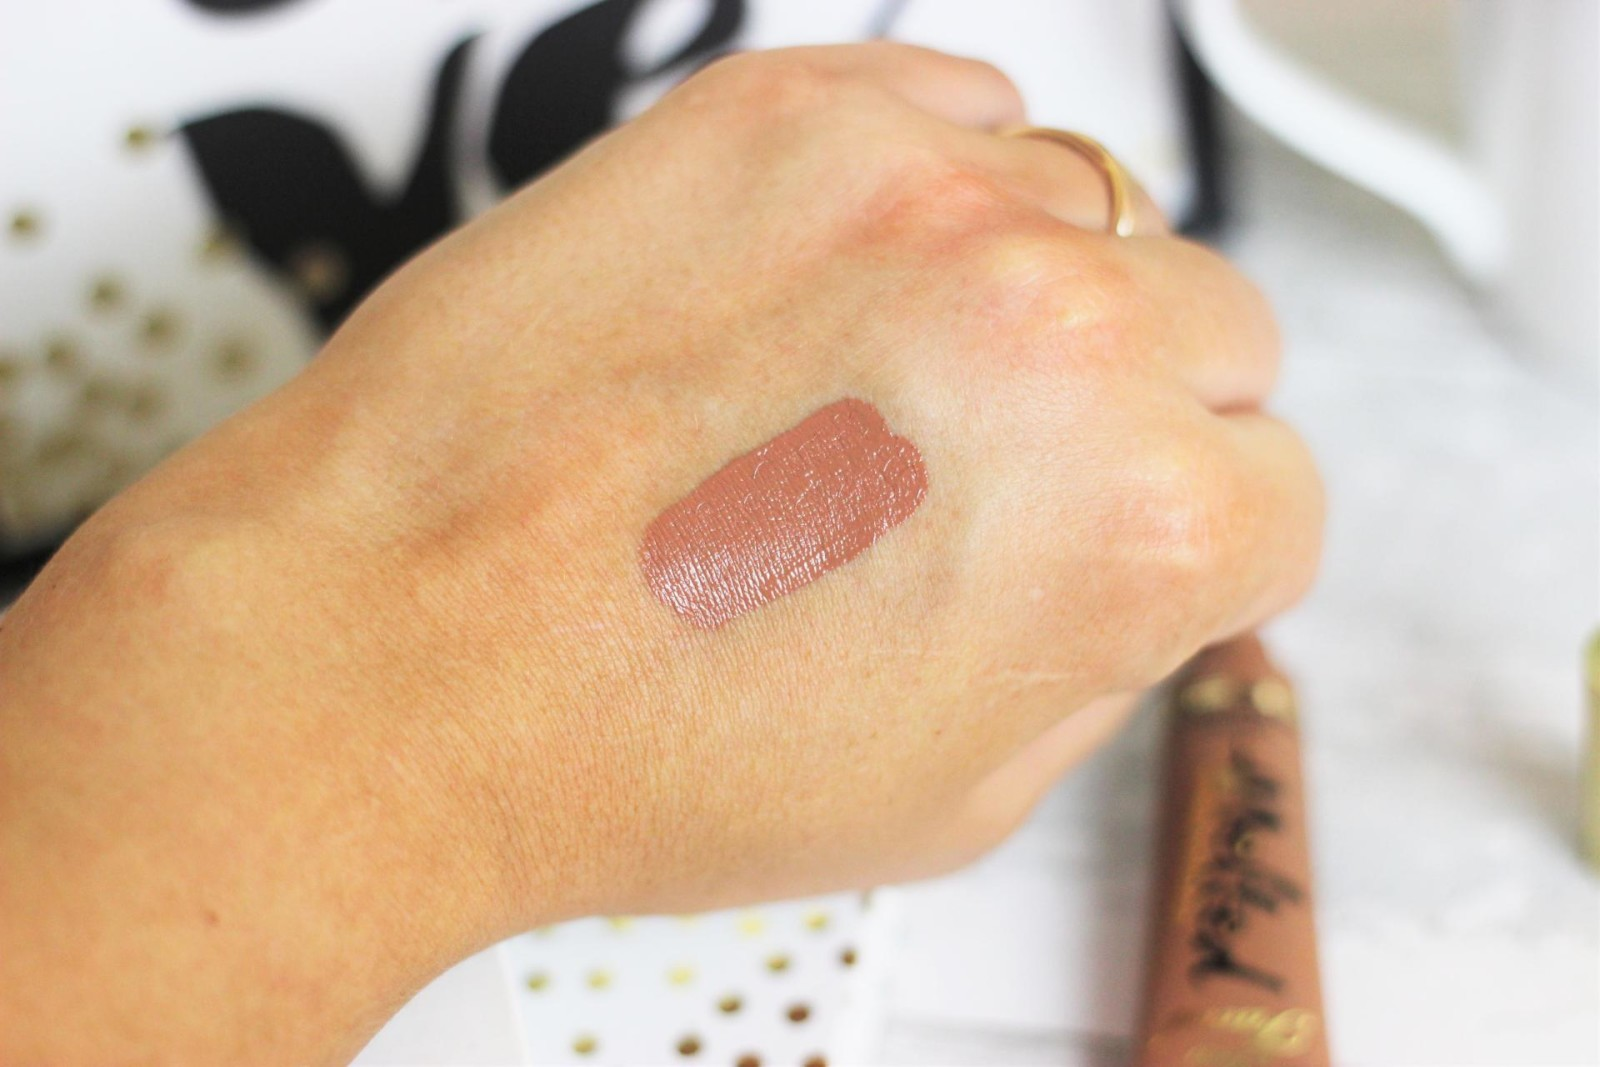 Too Faced Melted Lipstick in Chocolate Honey